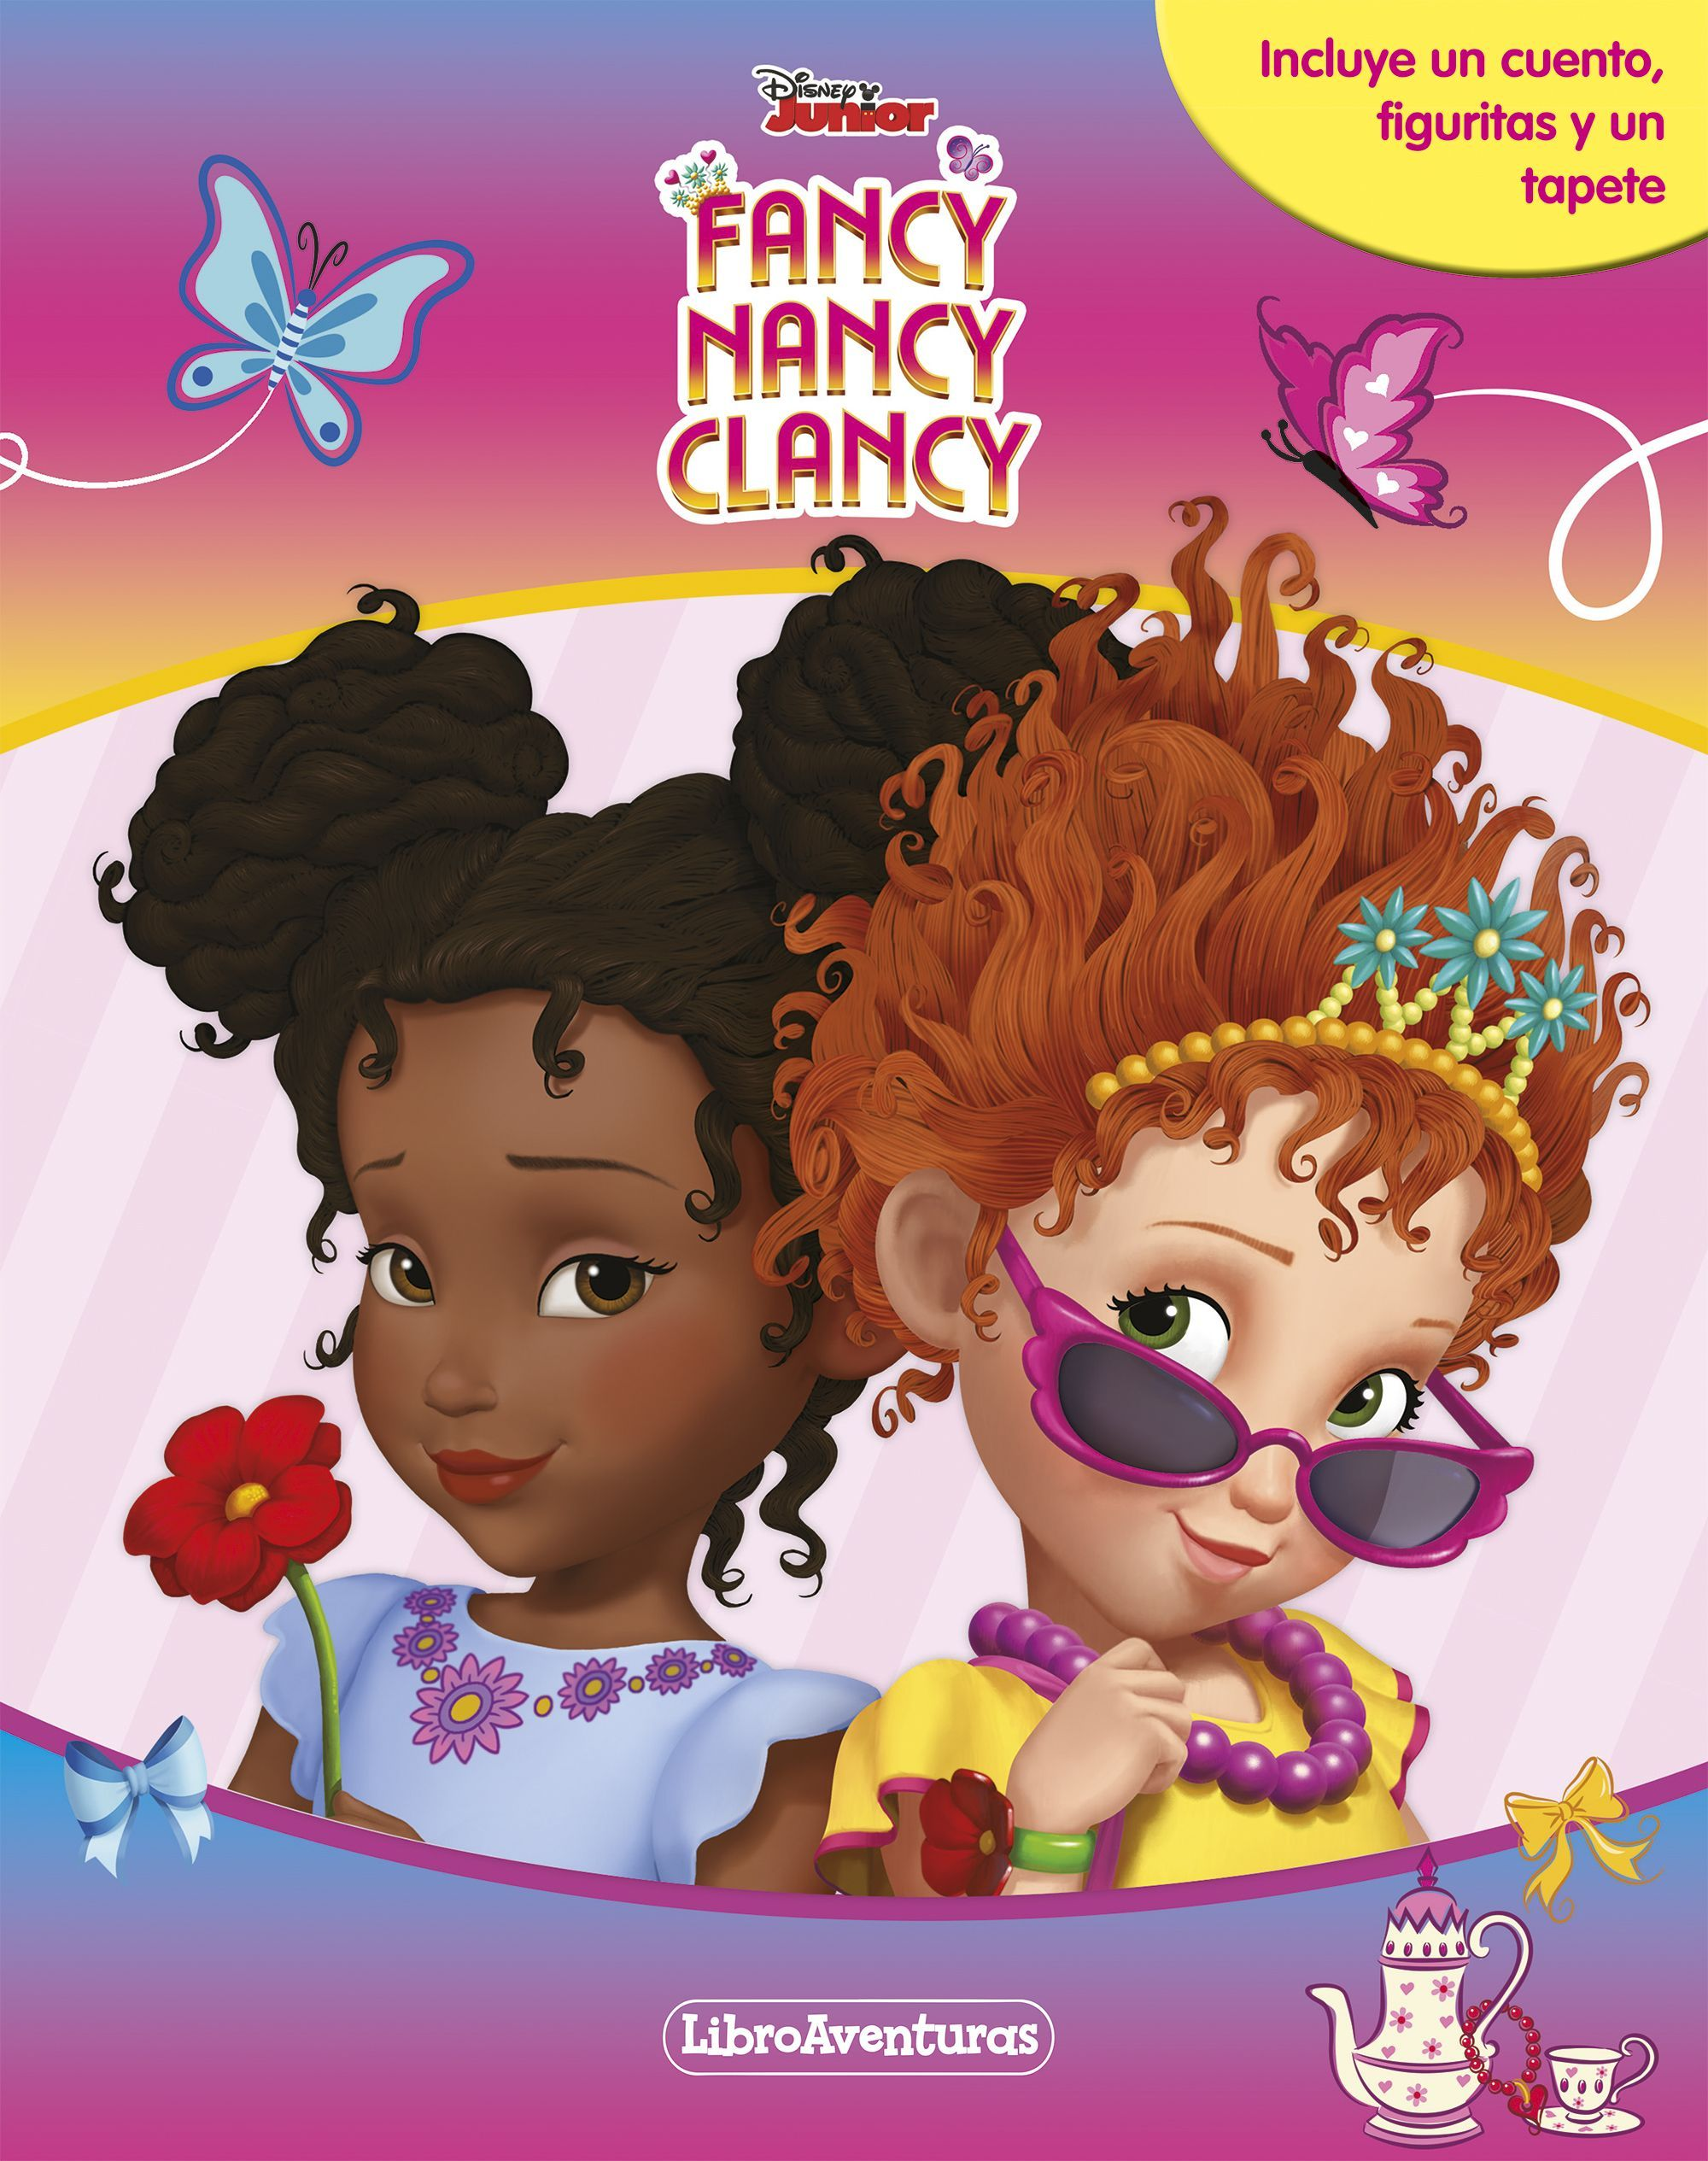 FANCY NANCY CLANCY LIBROAVENTURAS